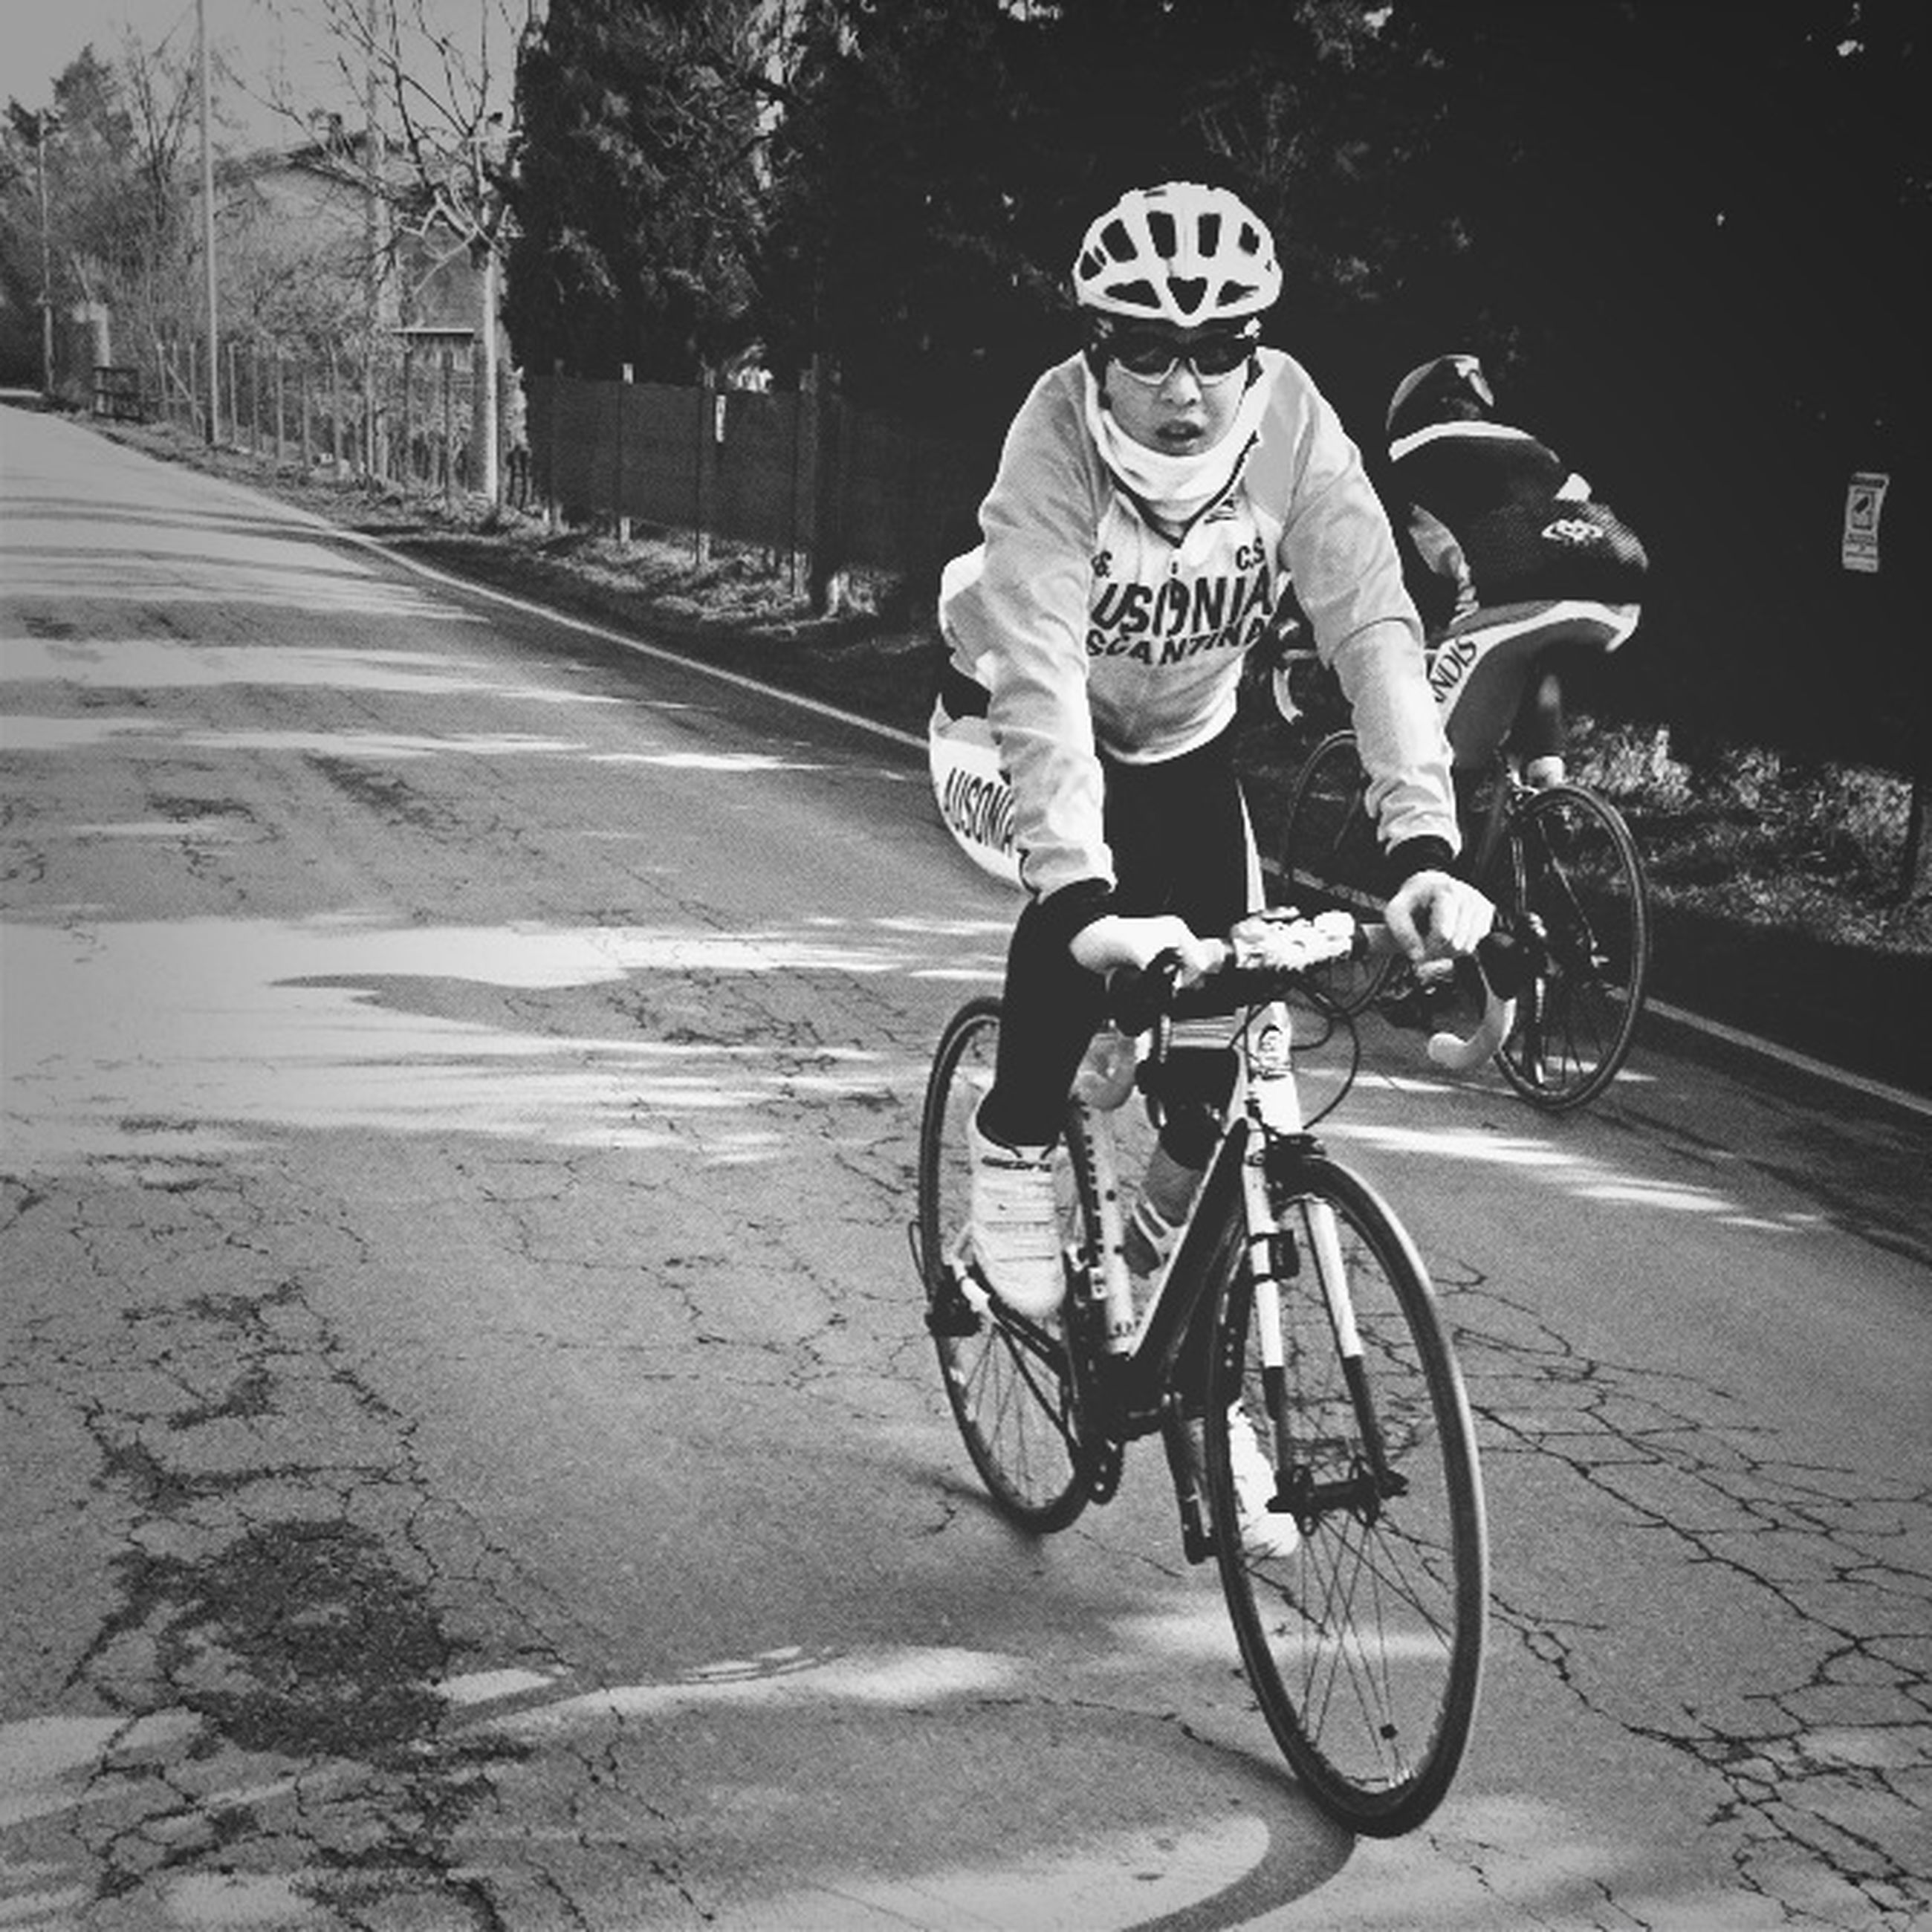 bicycle, transportation, mode of transport, land vehicle, riding, street, full length, cycling, lifestyles, leisure activity, road, on the move, stationary, men, travel, casual clothing, motorcycle, side view